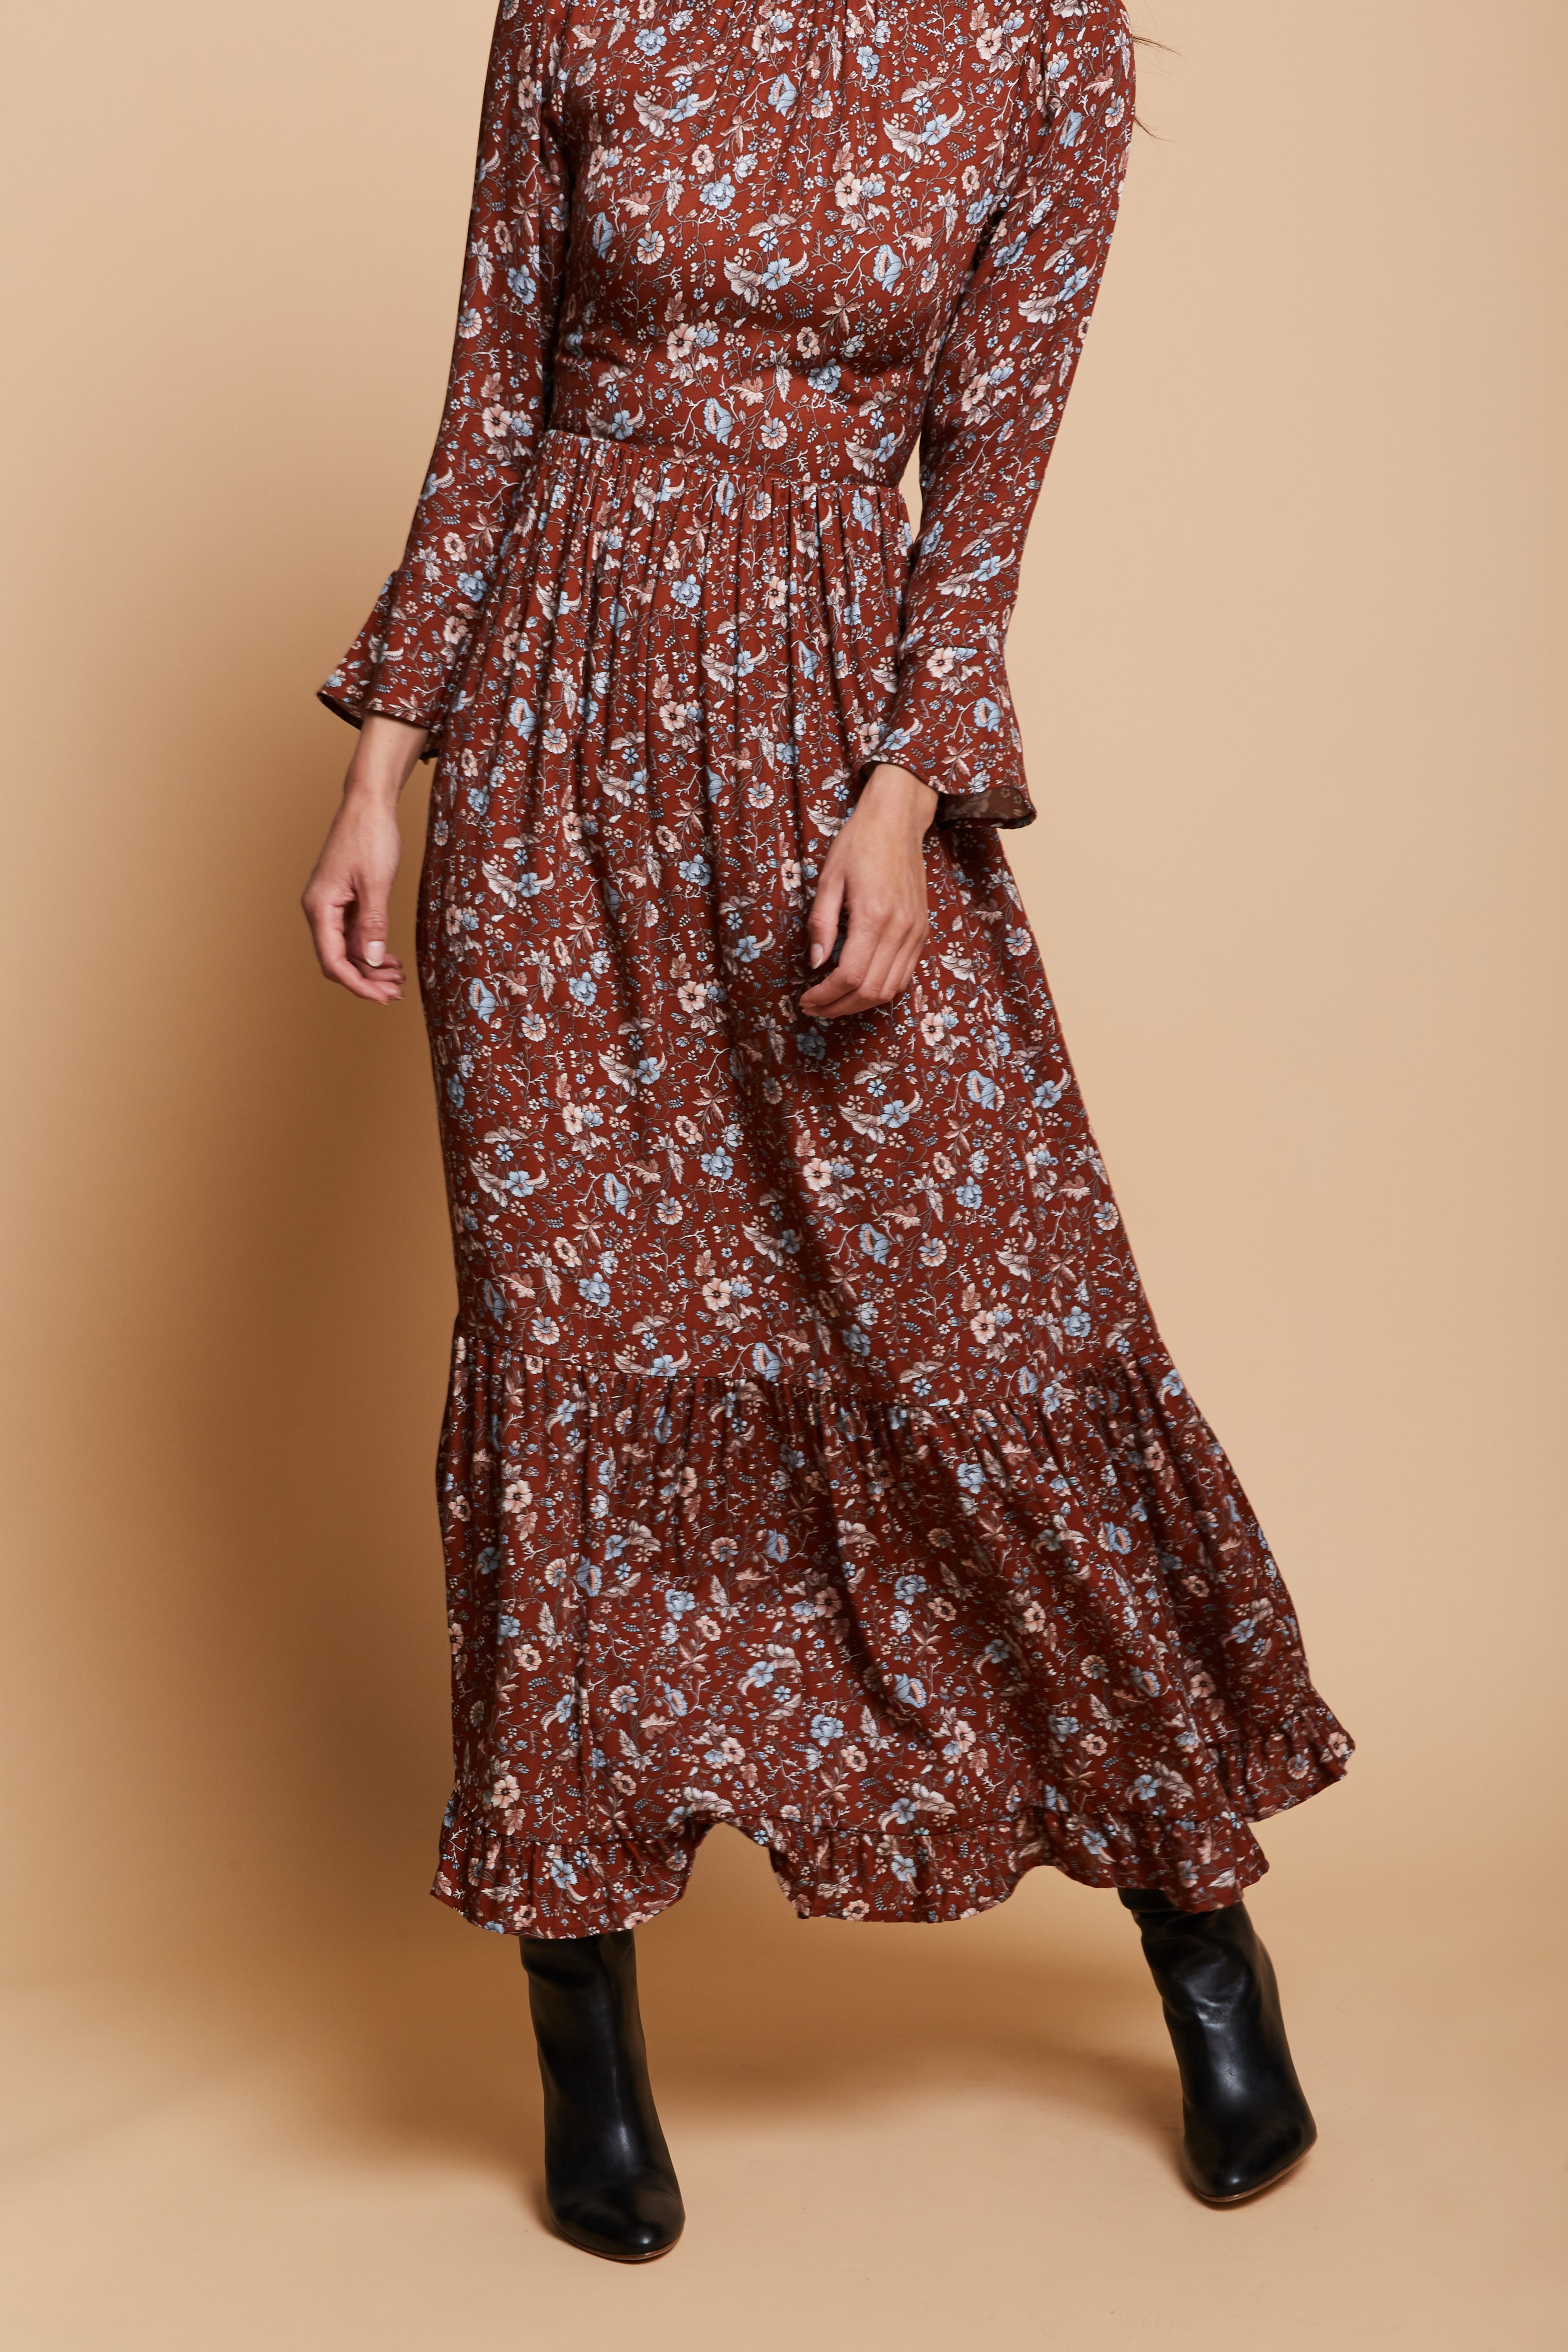 Molly Floral Dress - Brown